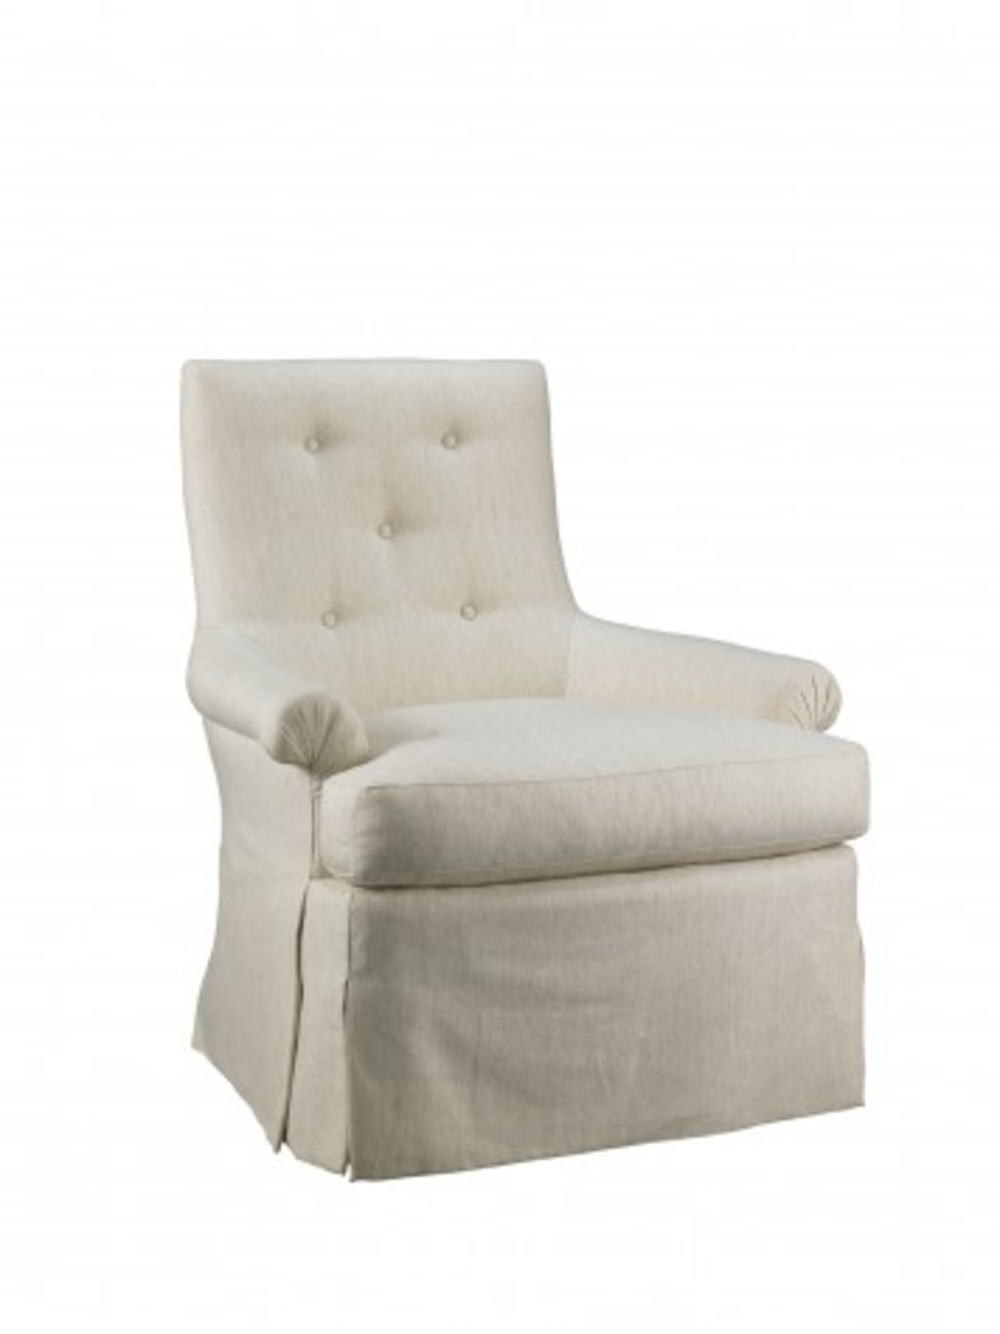 Mr. and Mrs. Howard by Sherrill Furniture - Sumner Chair